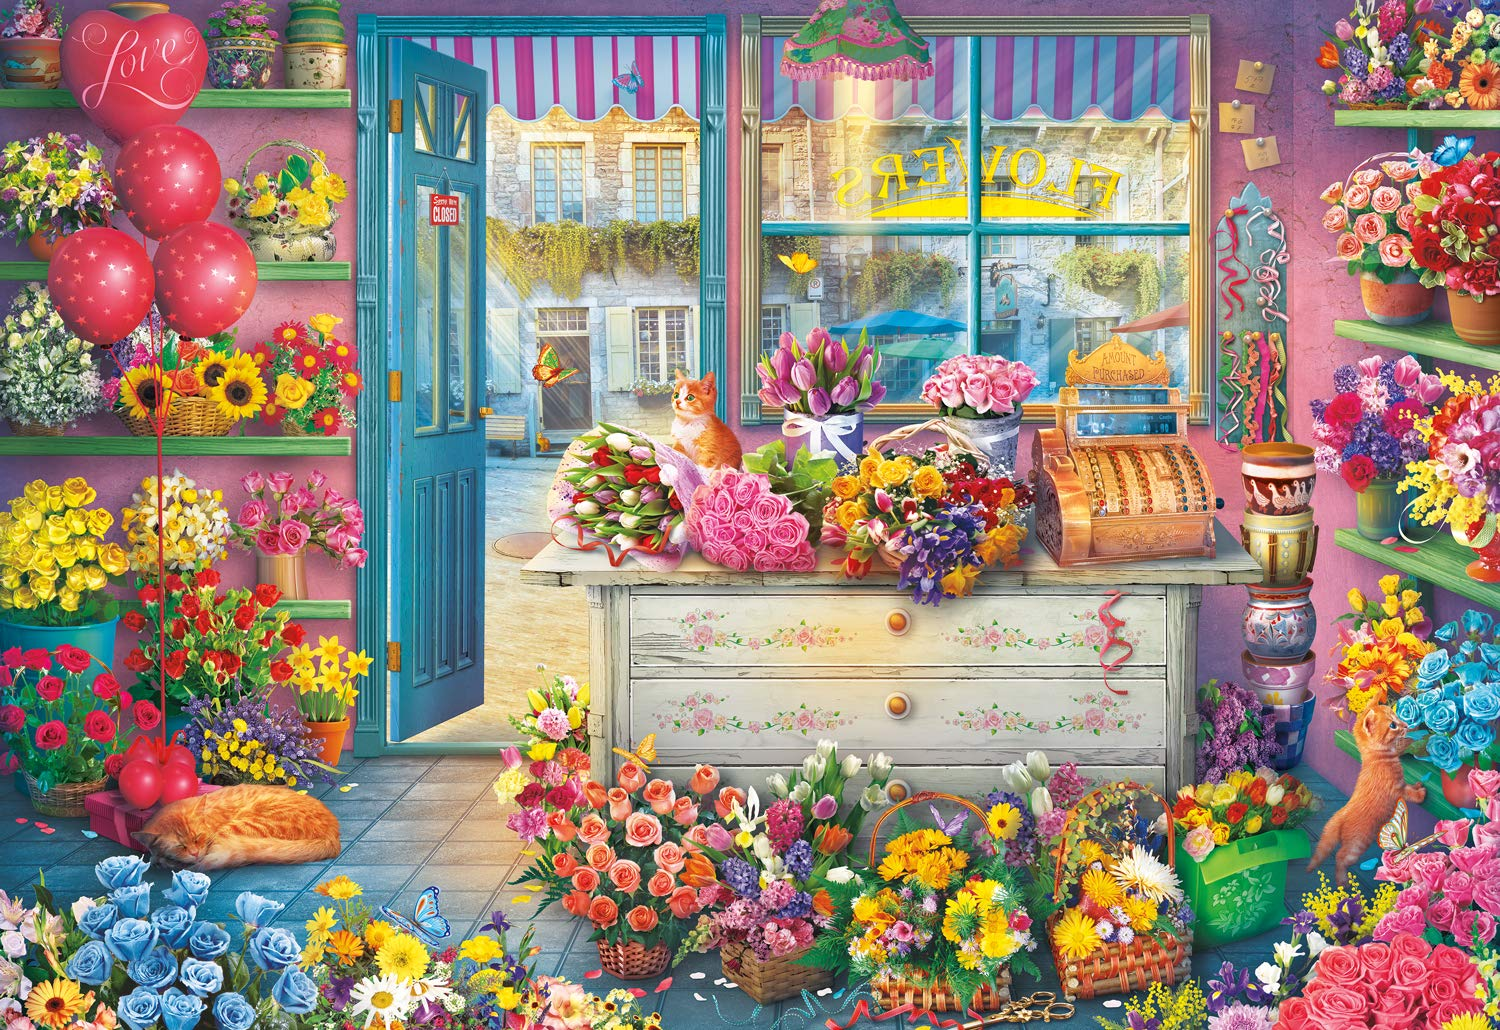 in Full Bloom 2000Piece Jigsaw Puzzle 2087 Buffalo Games